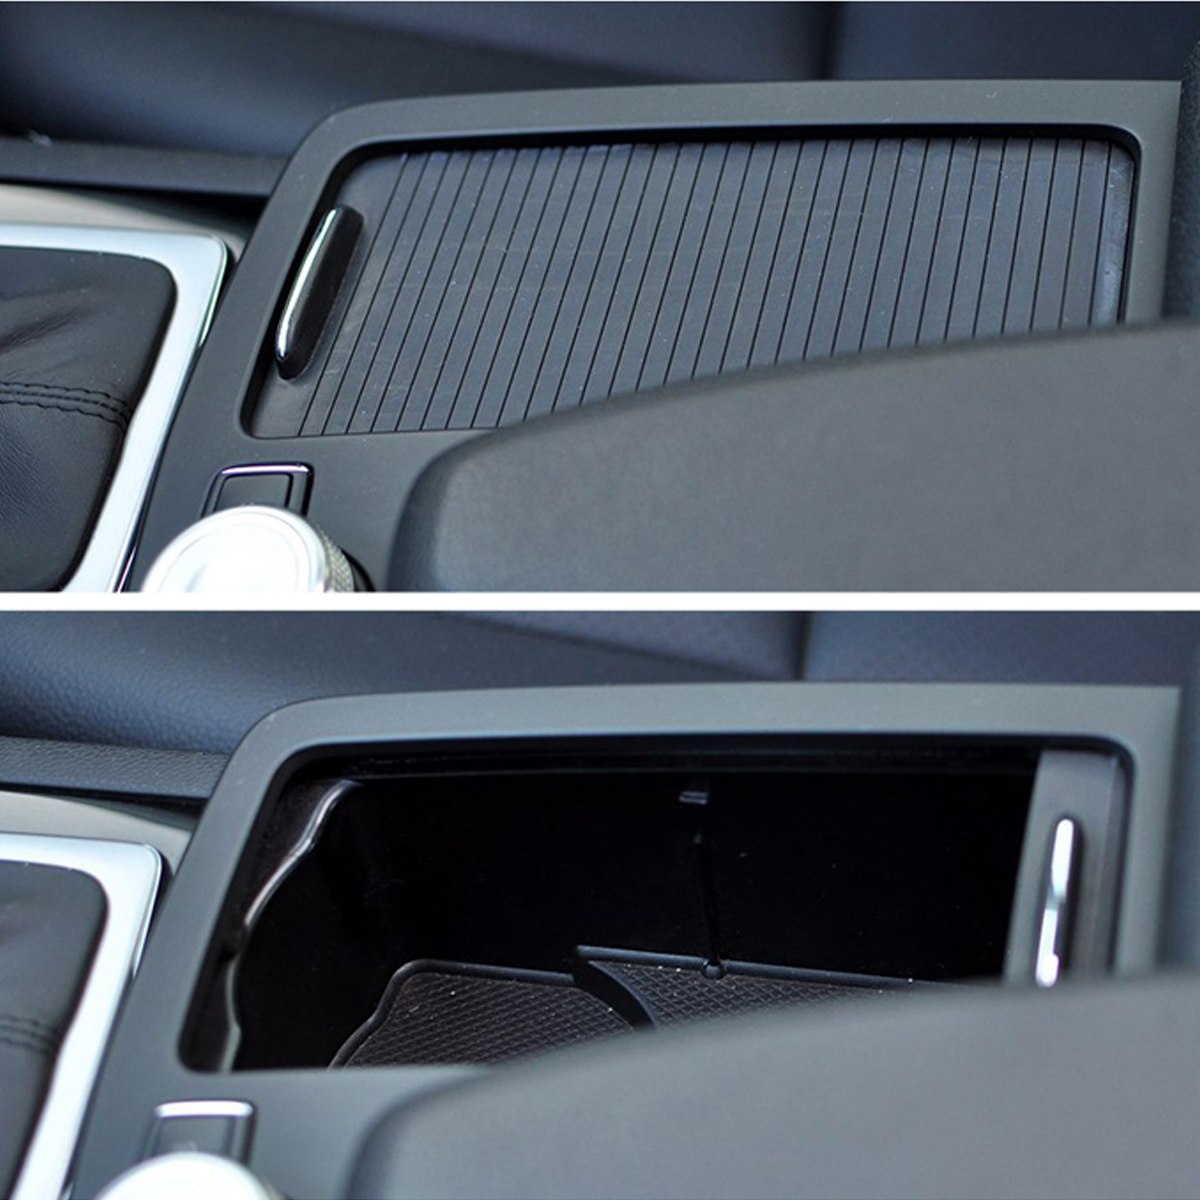 Car Center Console Cover Cup Holder Roller Blind C/E Class Cup Holder Storage Box Trim For Mercedes For Benz W204 C180 C200 S204